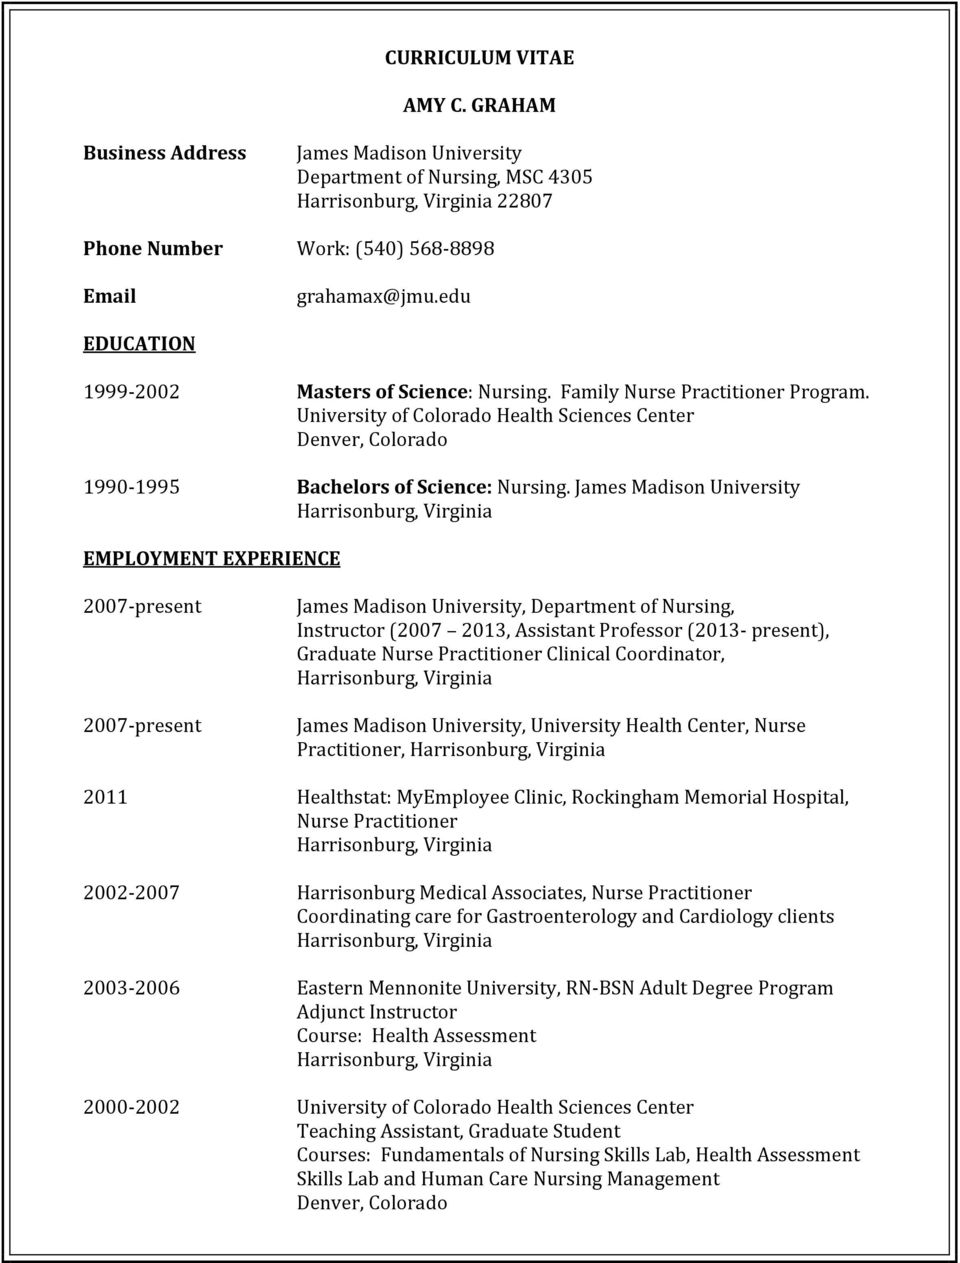 James Madison University EMPLOYMENT EXPERIENCE 2007 present 2007 present James Madison University, Department of Nursing, Instructor (2007 2013, Assistant Professor (2013 present), Graduate Nurse